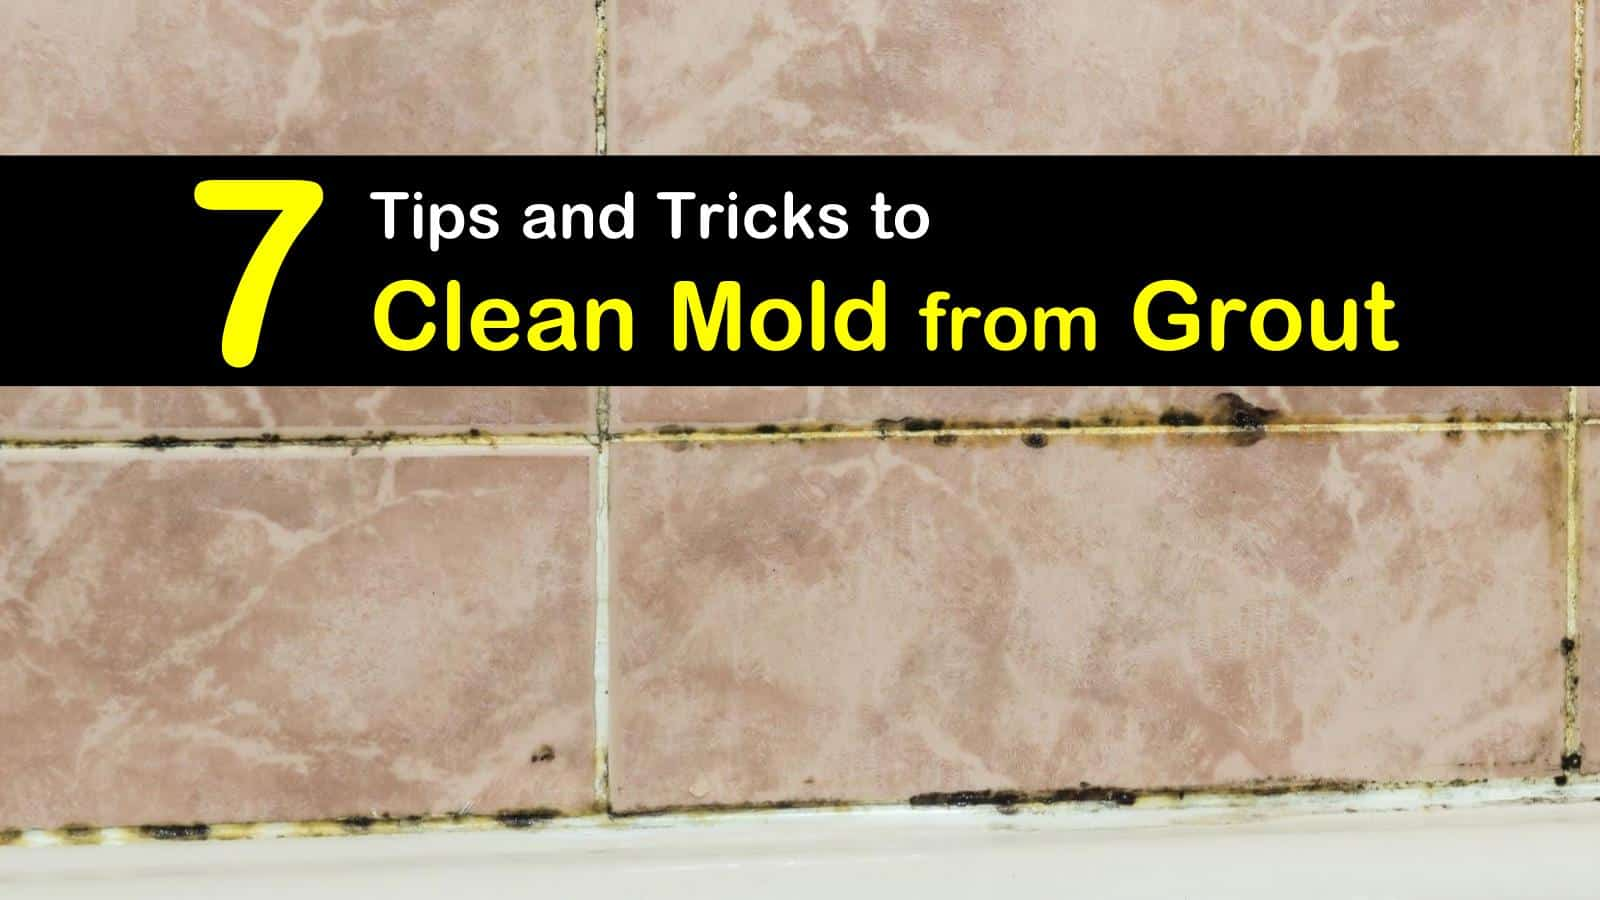 how to clean mold from grout titleimg1